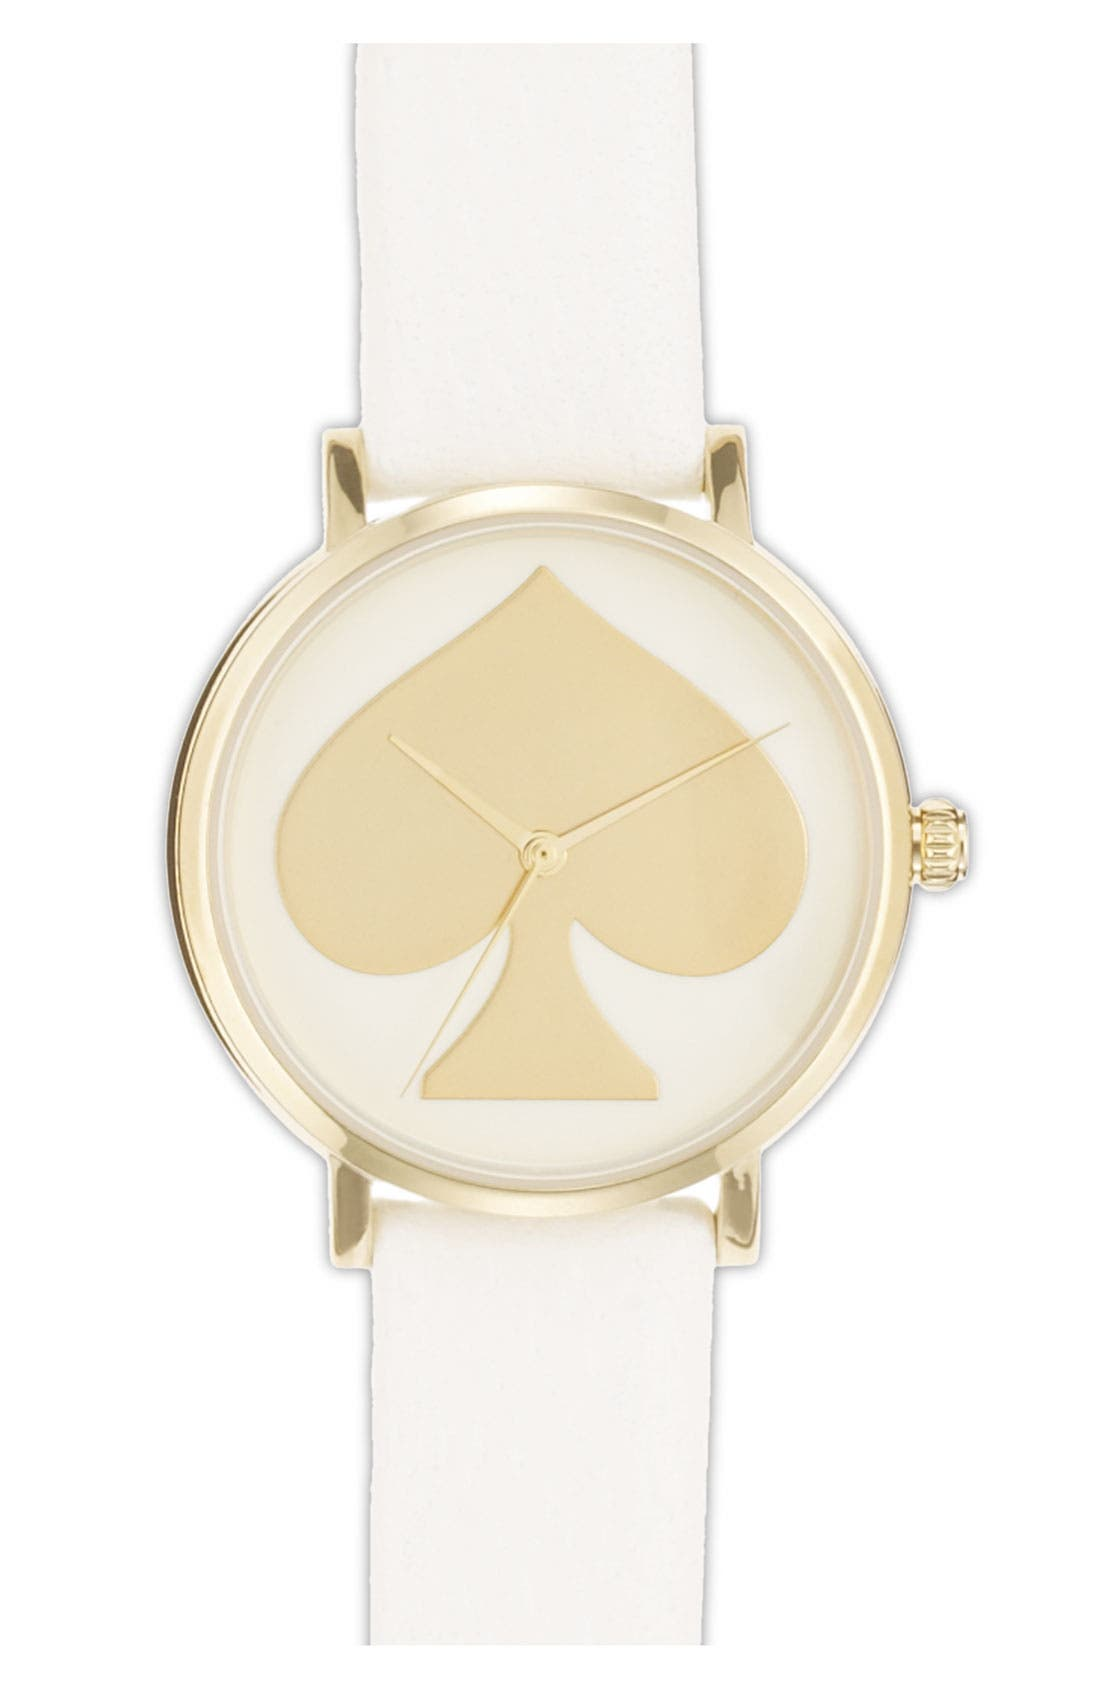 Alternate Image 1 Selected - kate spade new york 'metro' patterned dial watch, 34mm